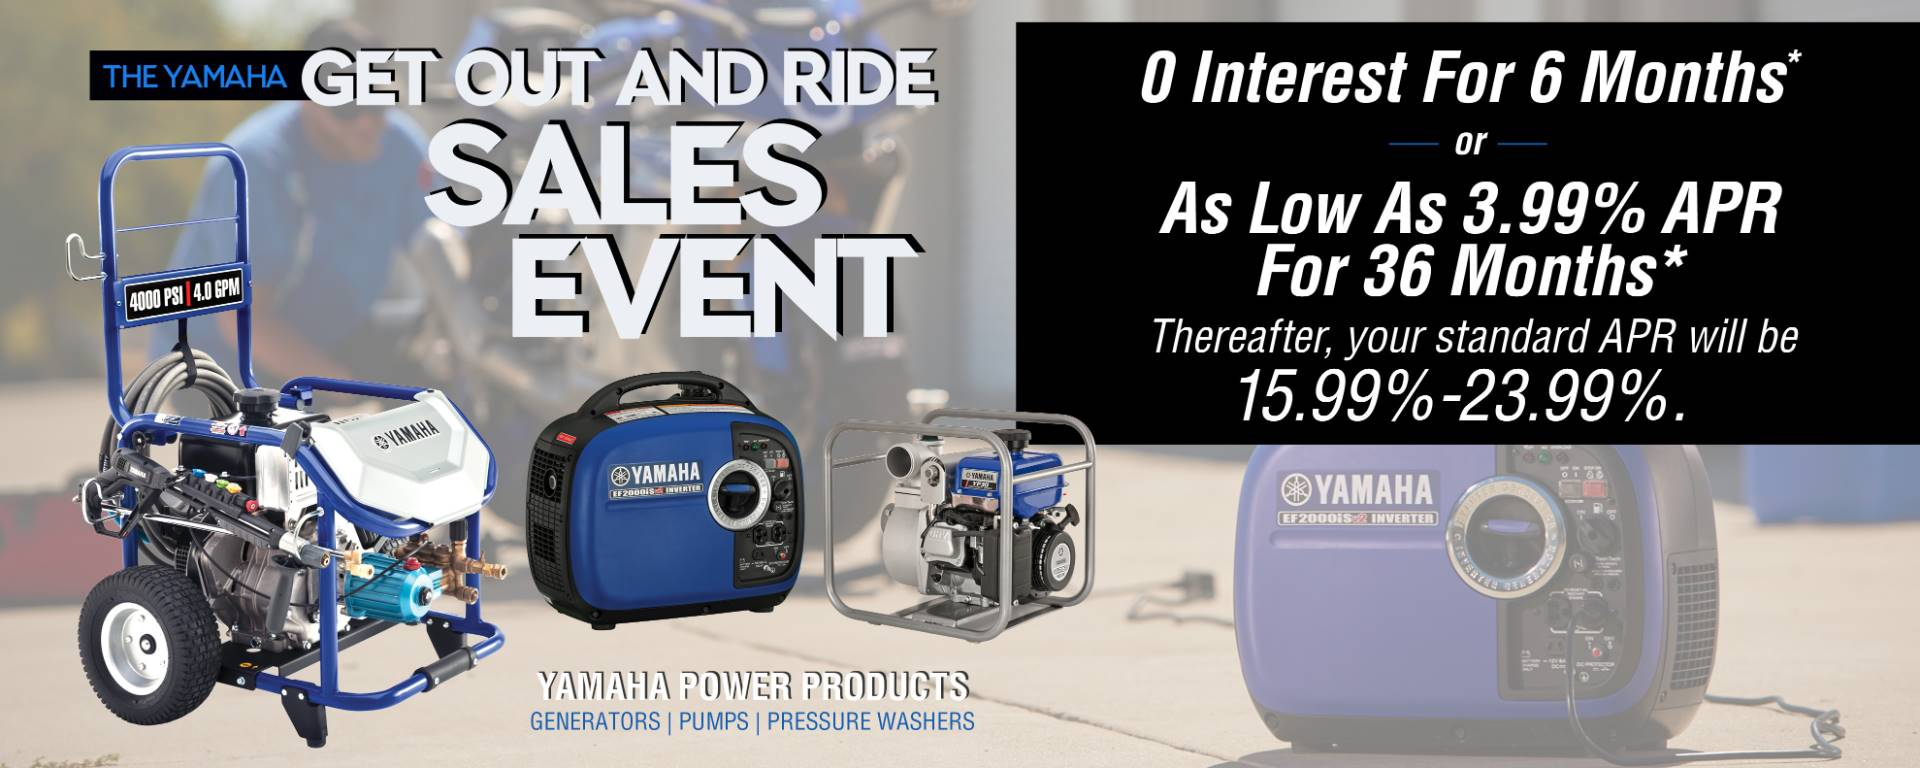 The Yamaha GET OUT AND RIDE SALES EVENT - Power Equipment - MY2014-2017